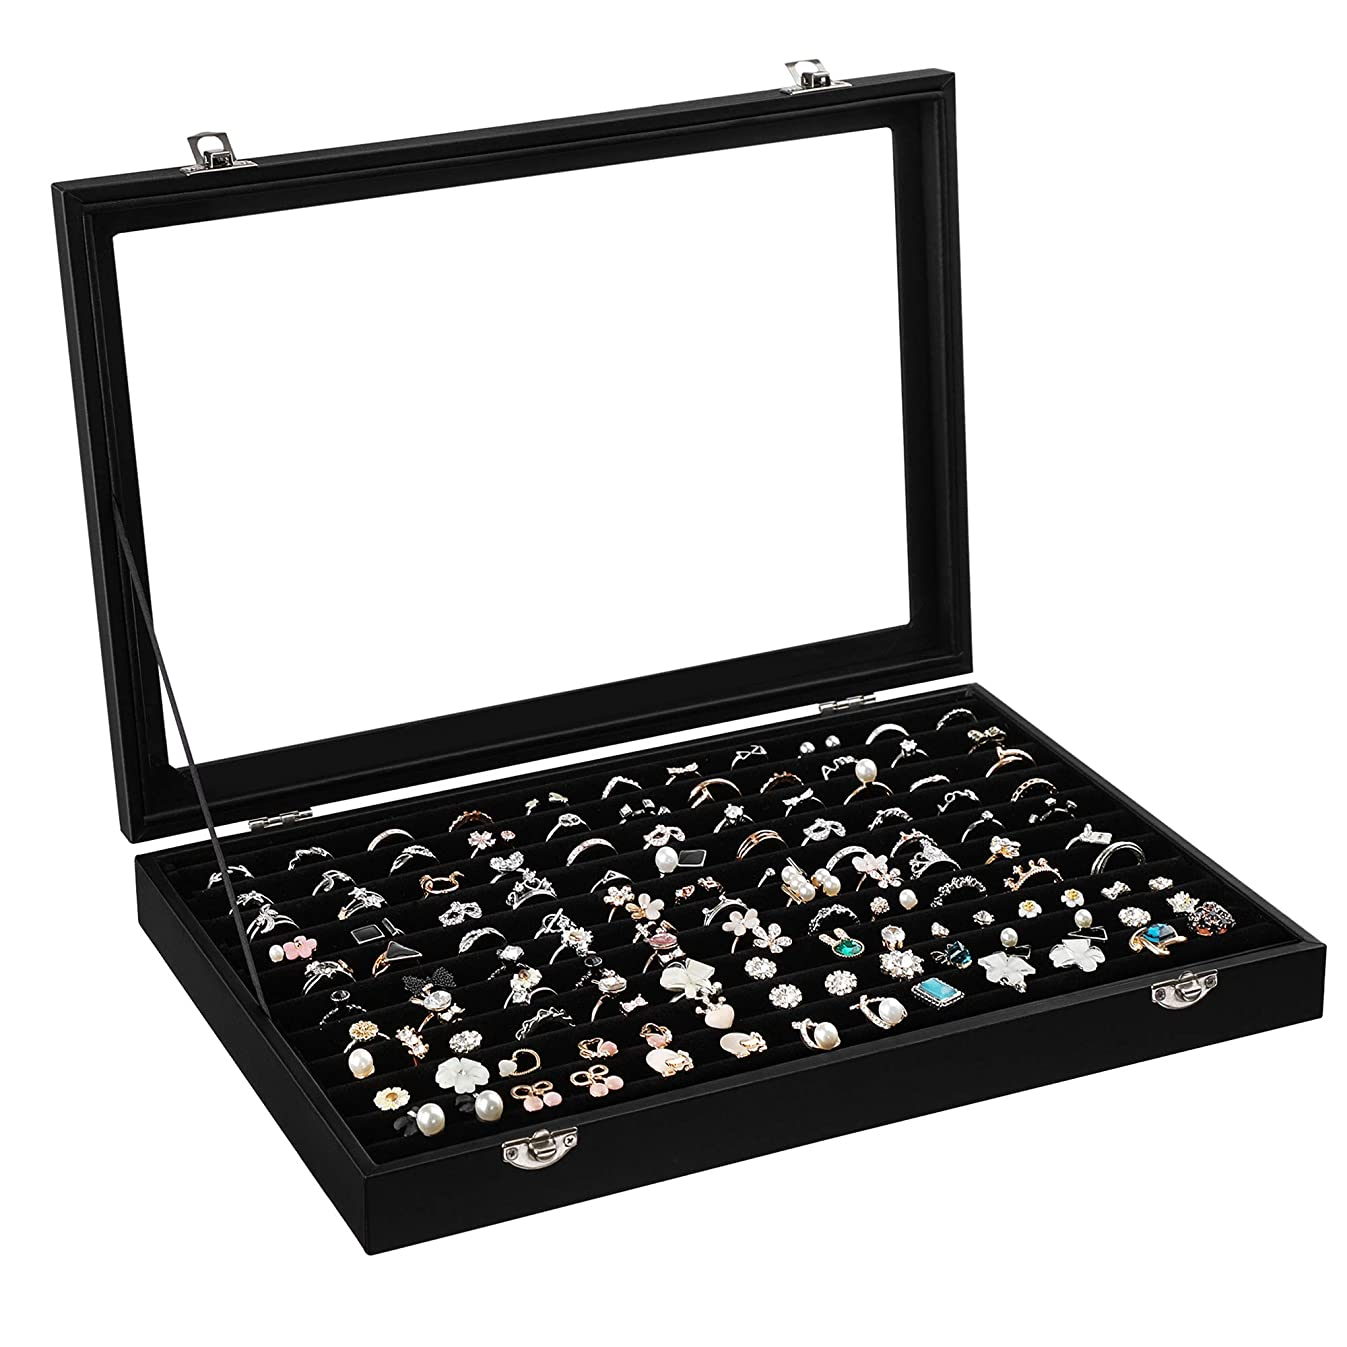 SONGMICS 100 Ring Display Case 11 Rows Jewerly Organizer Earring Showcase Box with Glass Lid Black UJDS301